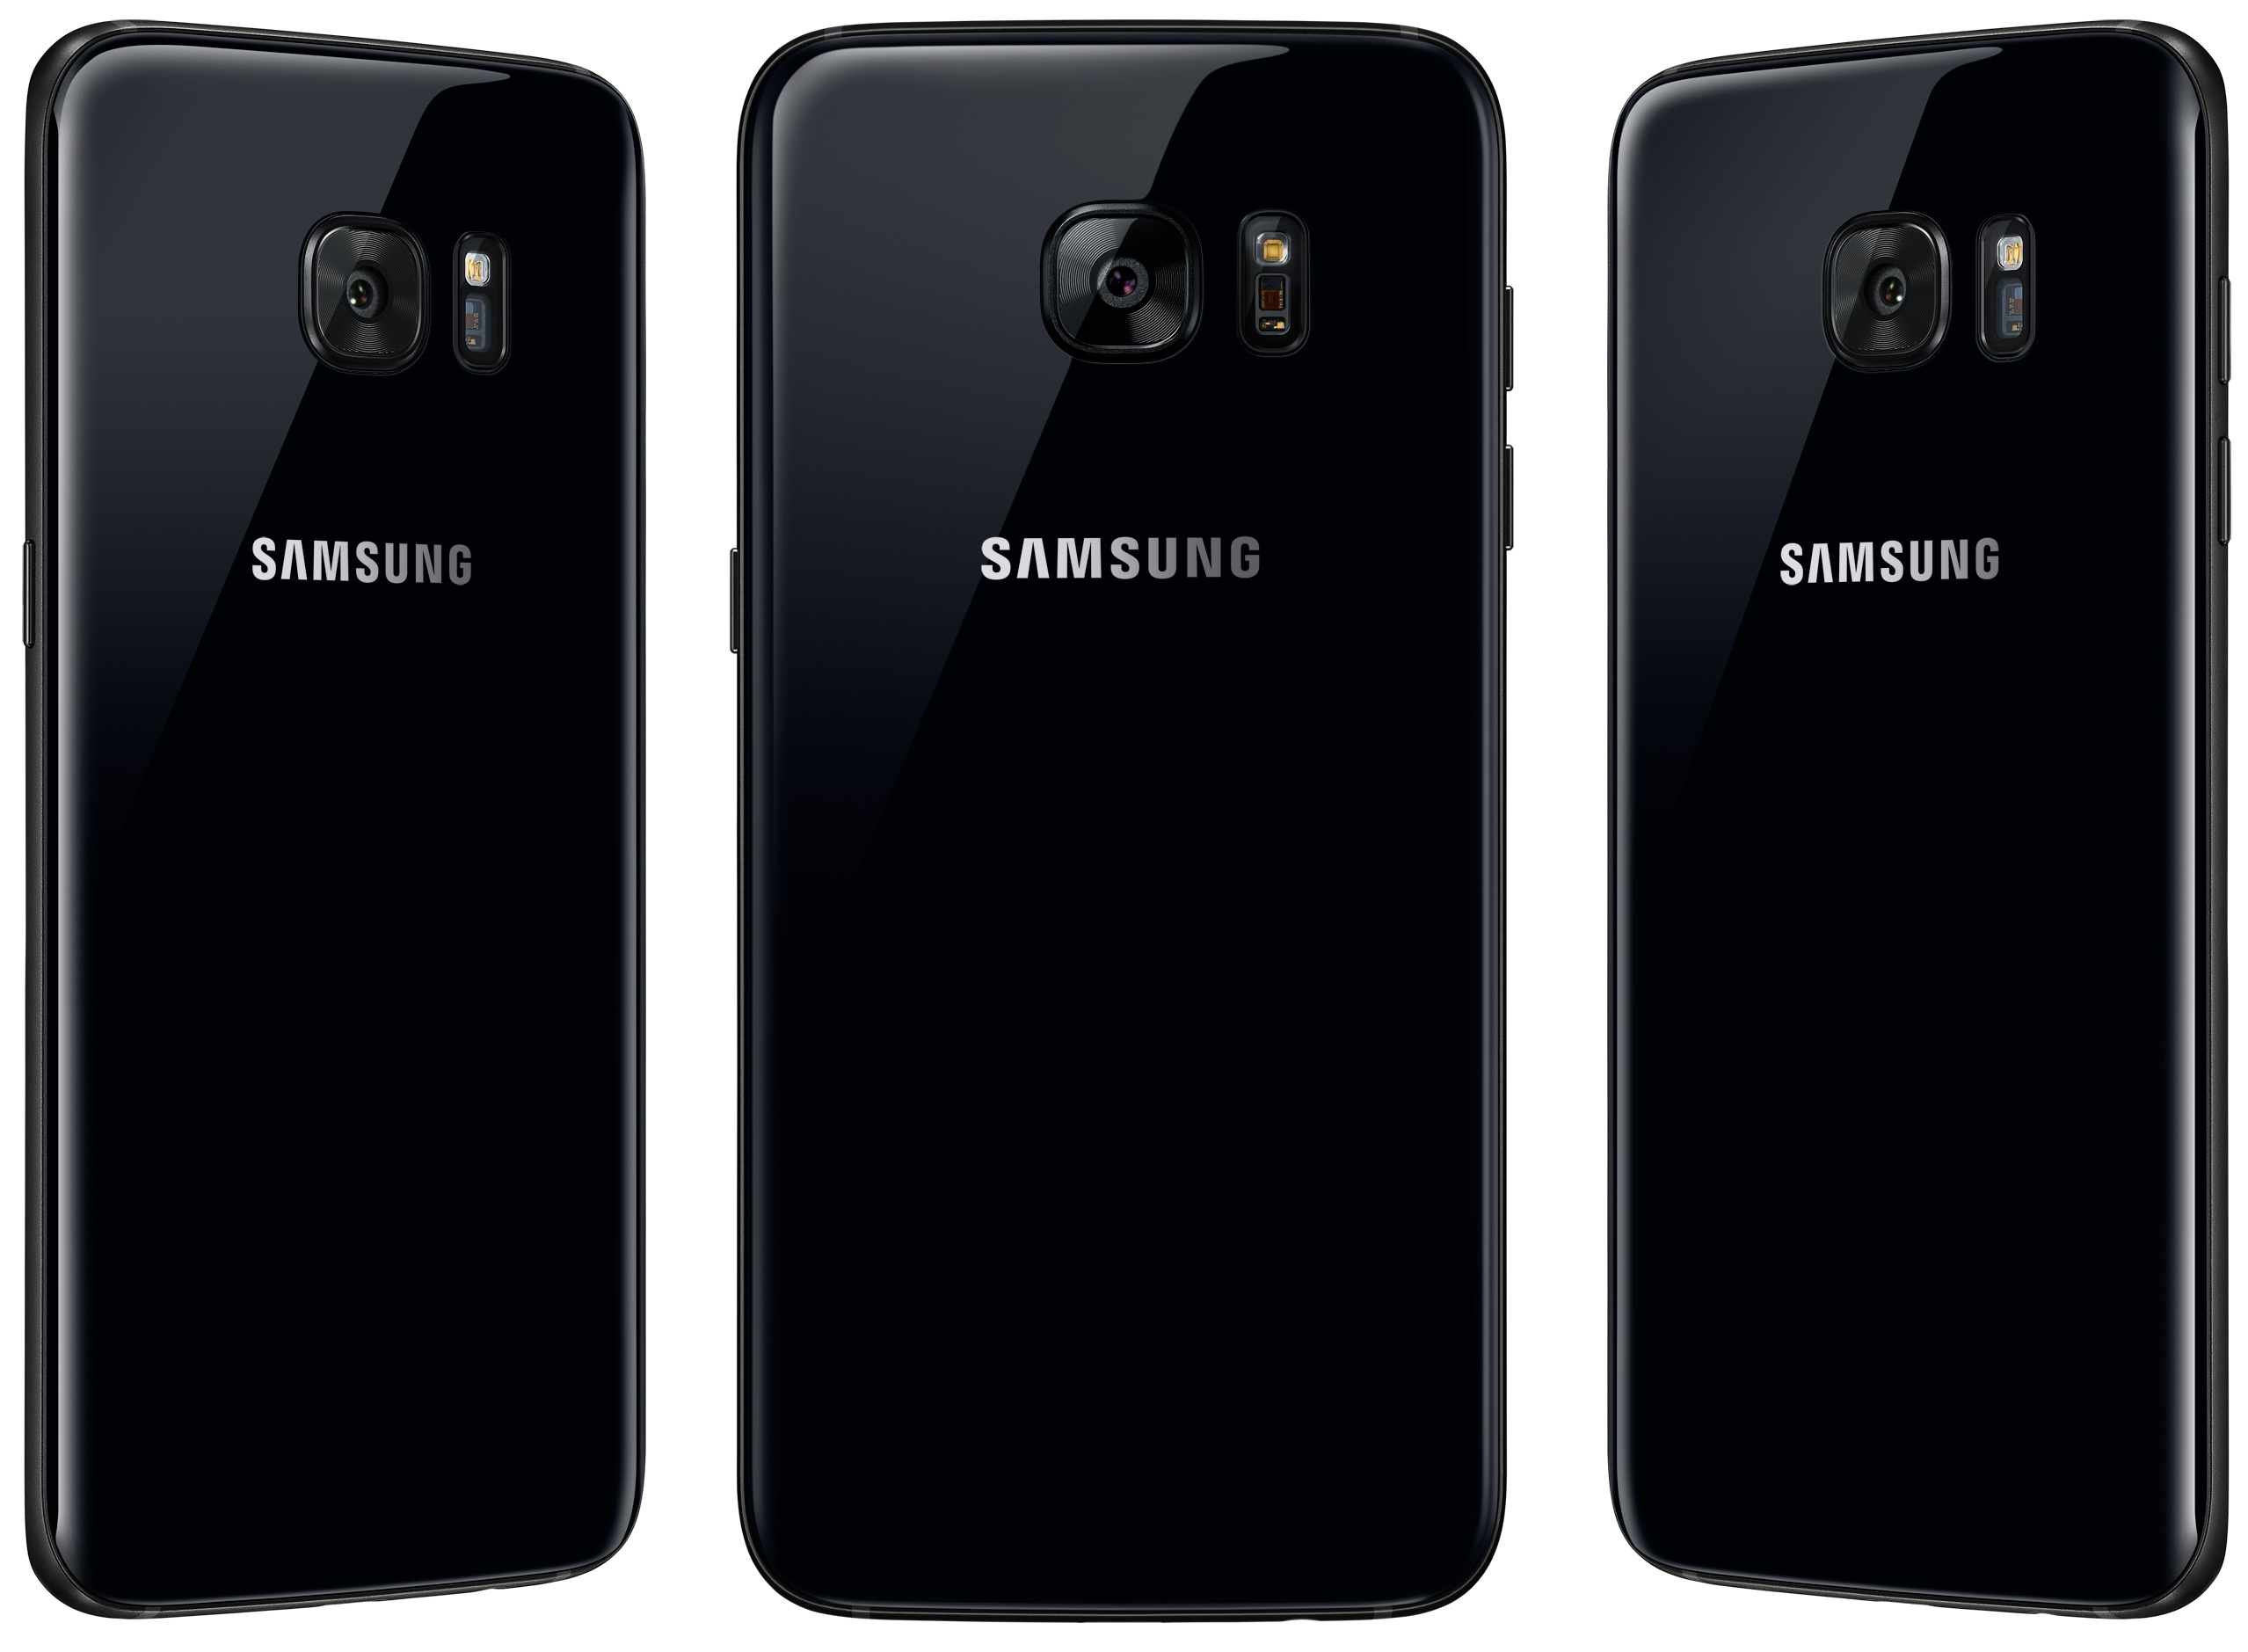 Samsung Galaxy S7 Edge Fall Wallpaper Bloomberg Galaxy S8 To Beat Iphone 8 To Virtual Home